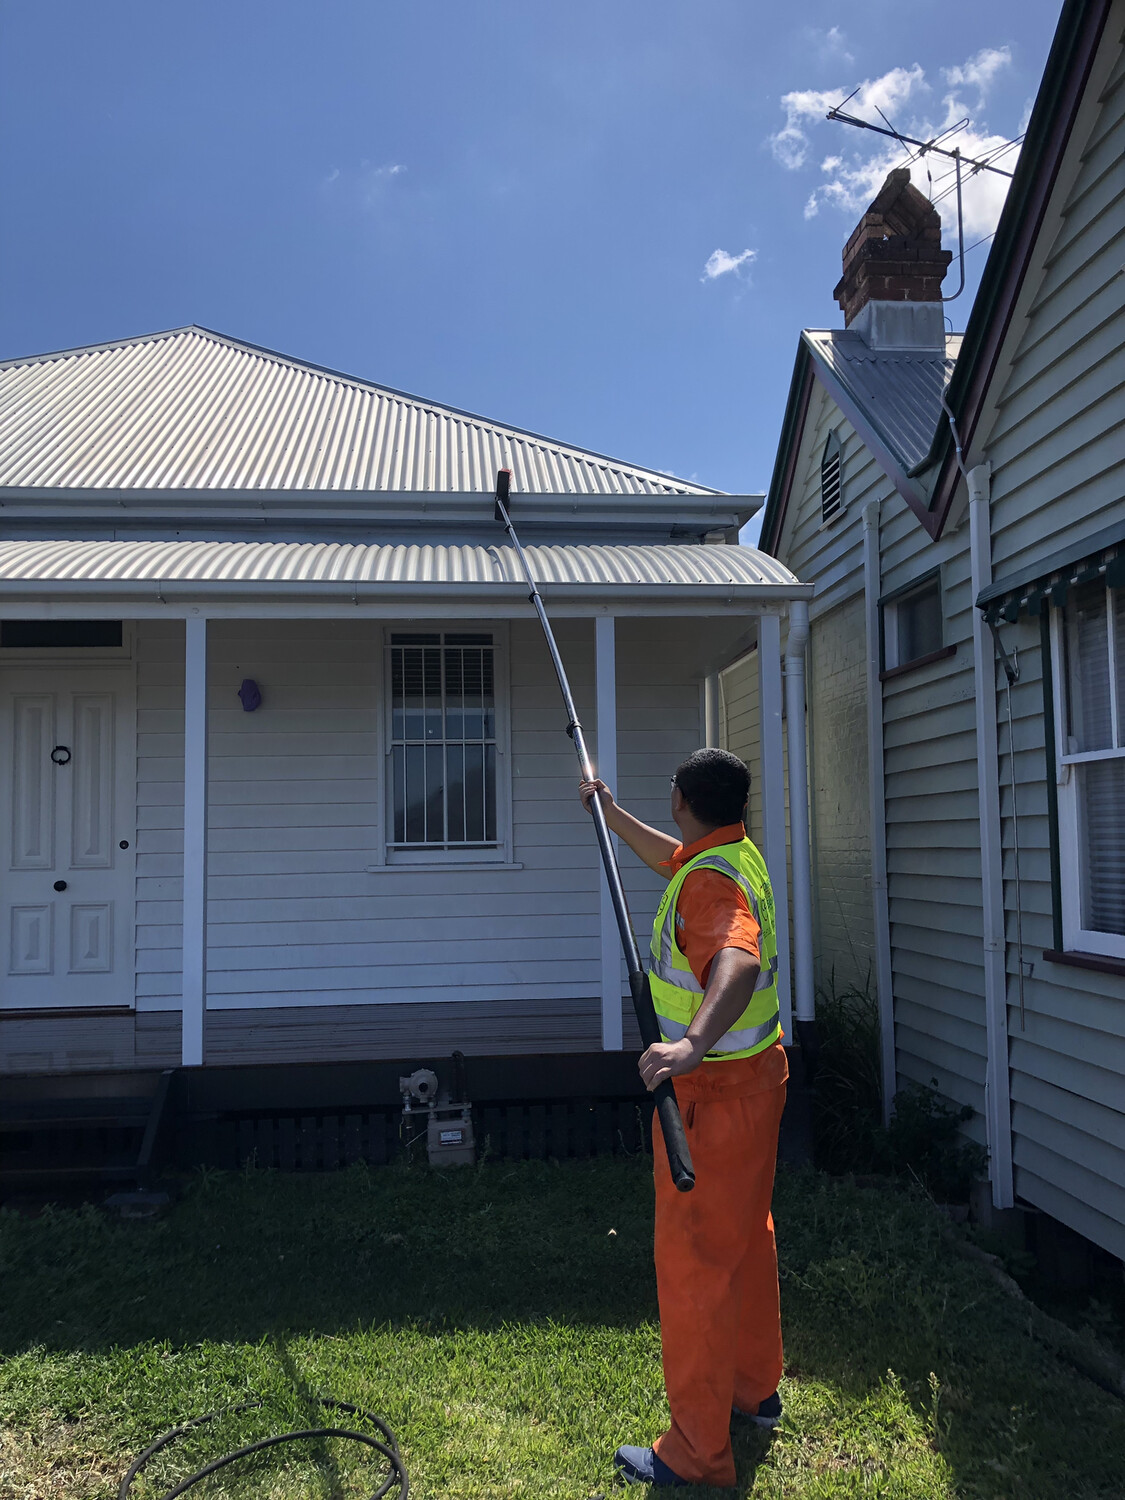 House Washing Cleaning Poles Australia 🇦🇺 7.2 M